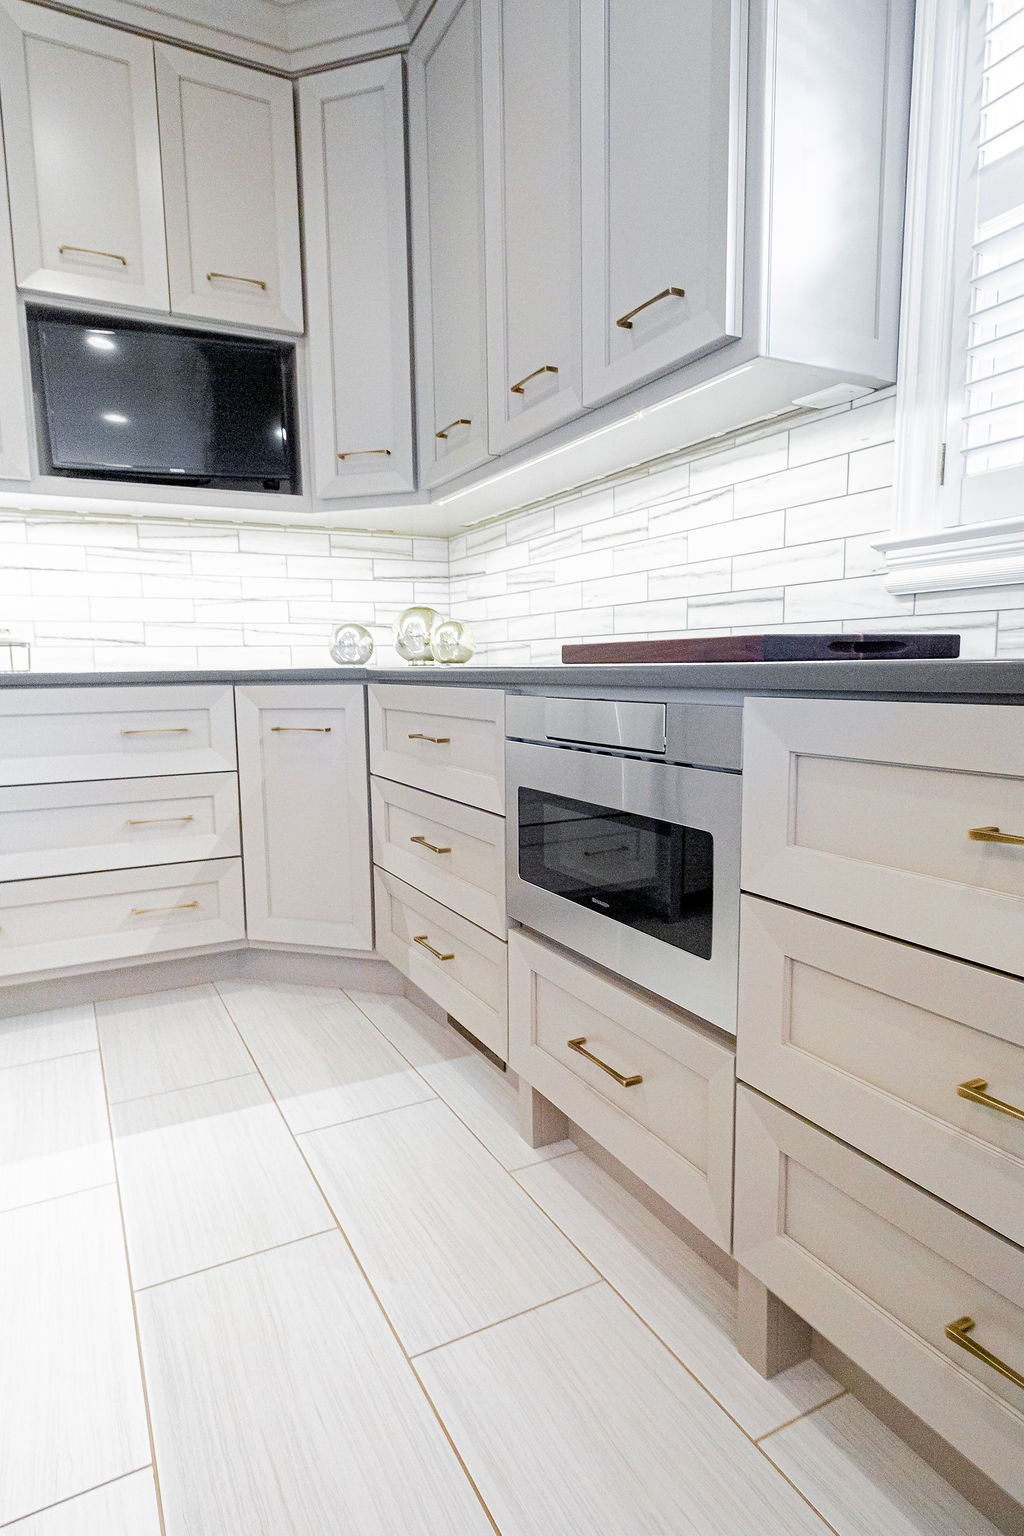 Integrated under cabinet lighting - microwave drawer - built in TV